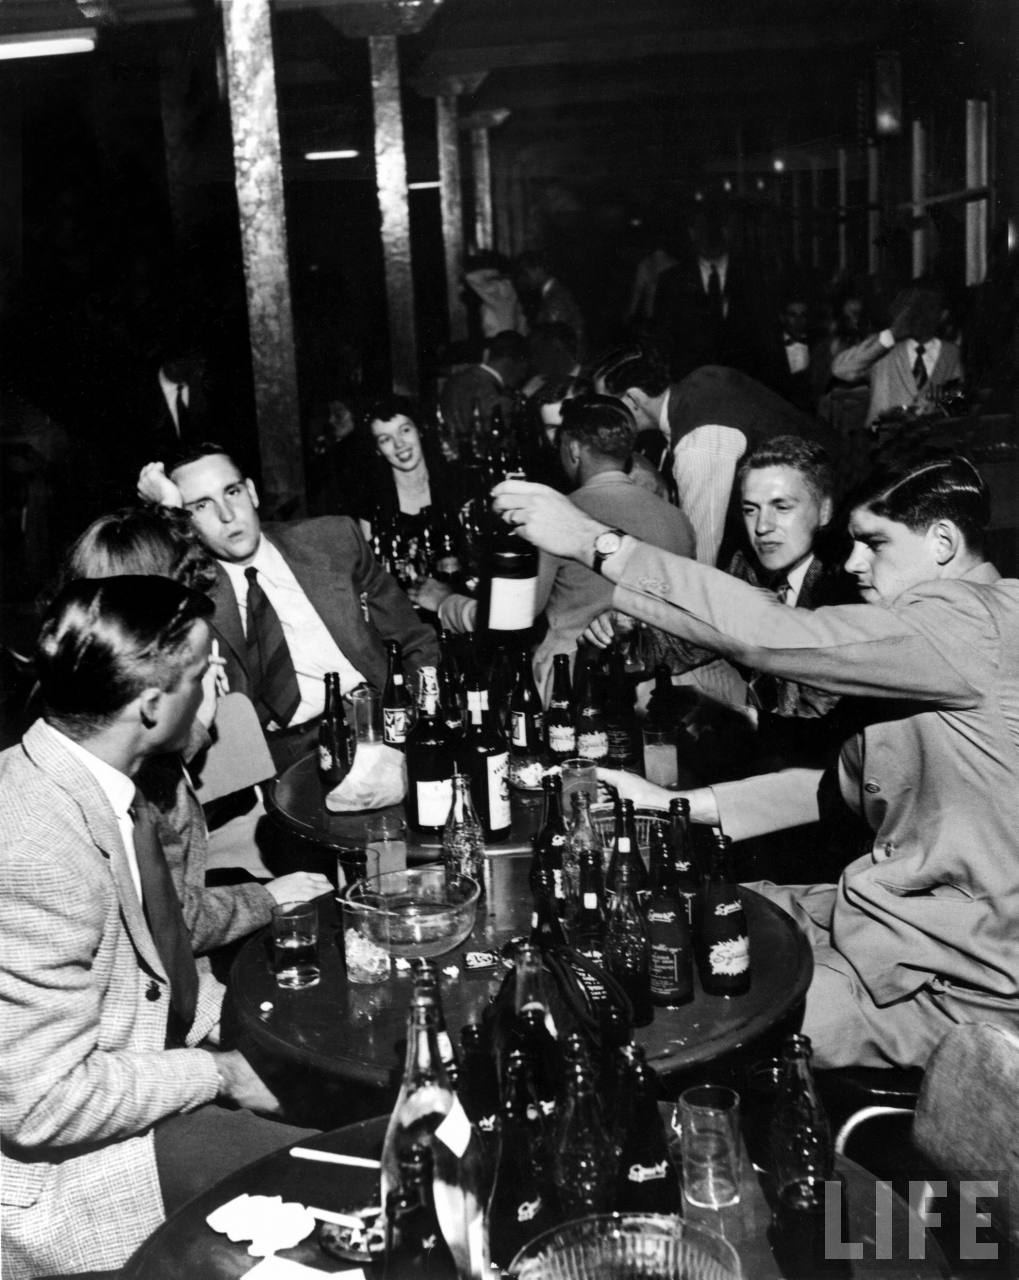 Men and women in Kansas roadhouse, during prohibition.